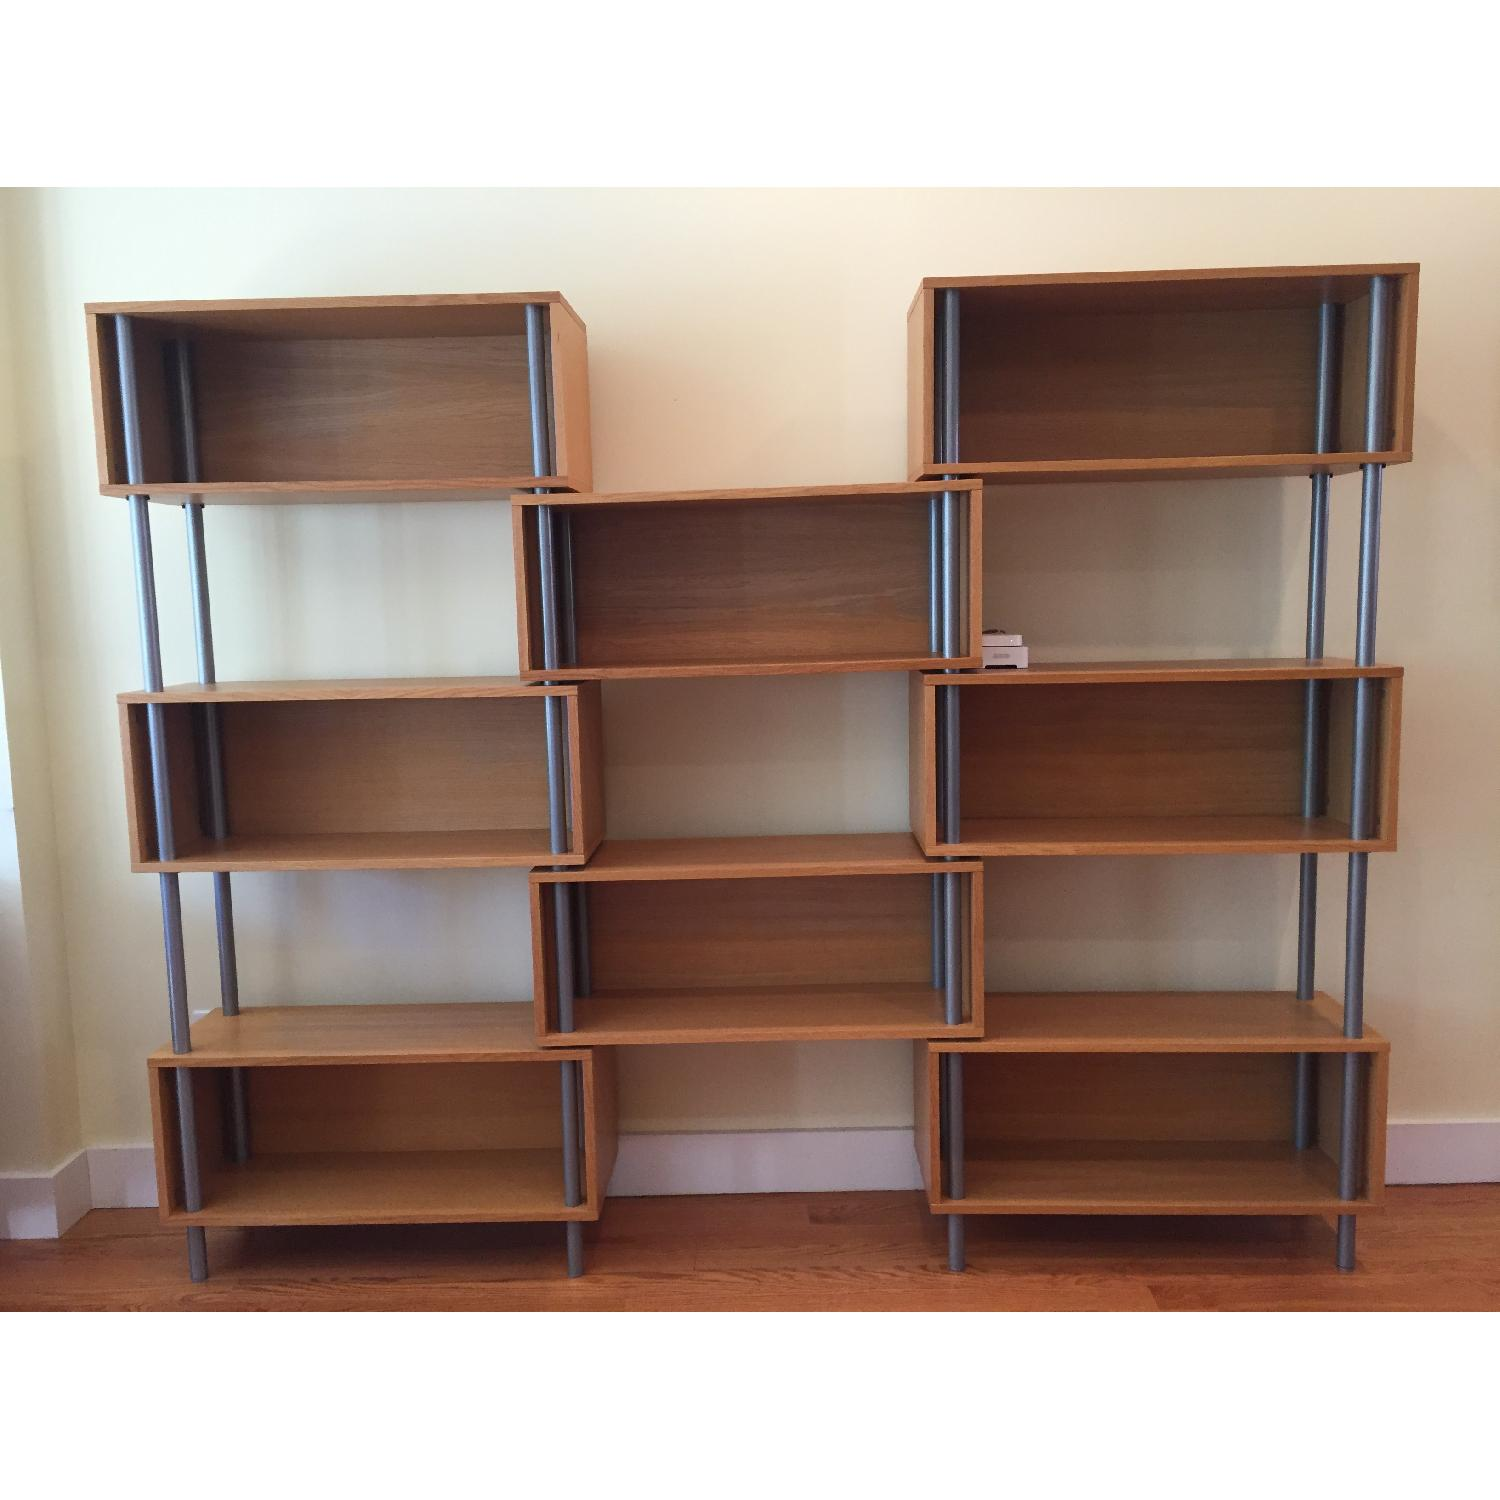 Blu Dot Chicago 8 Box Shelving Unit - image-1